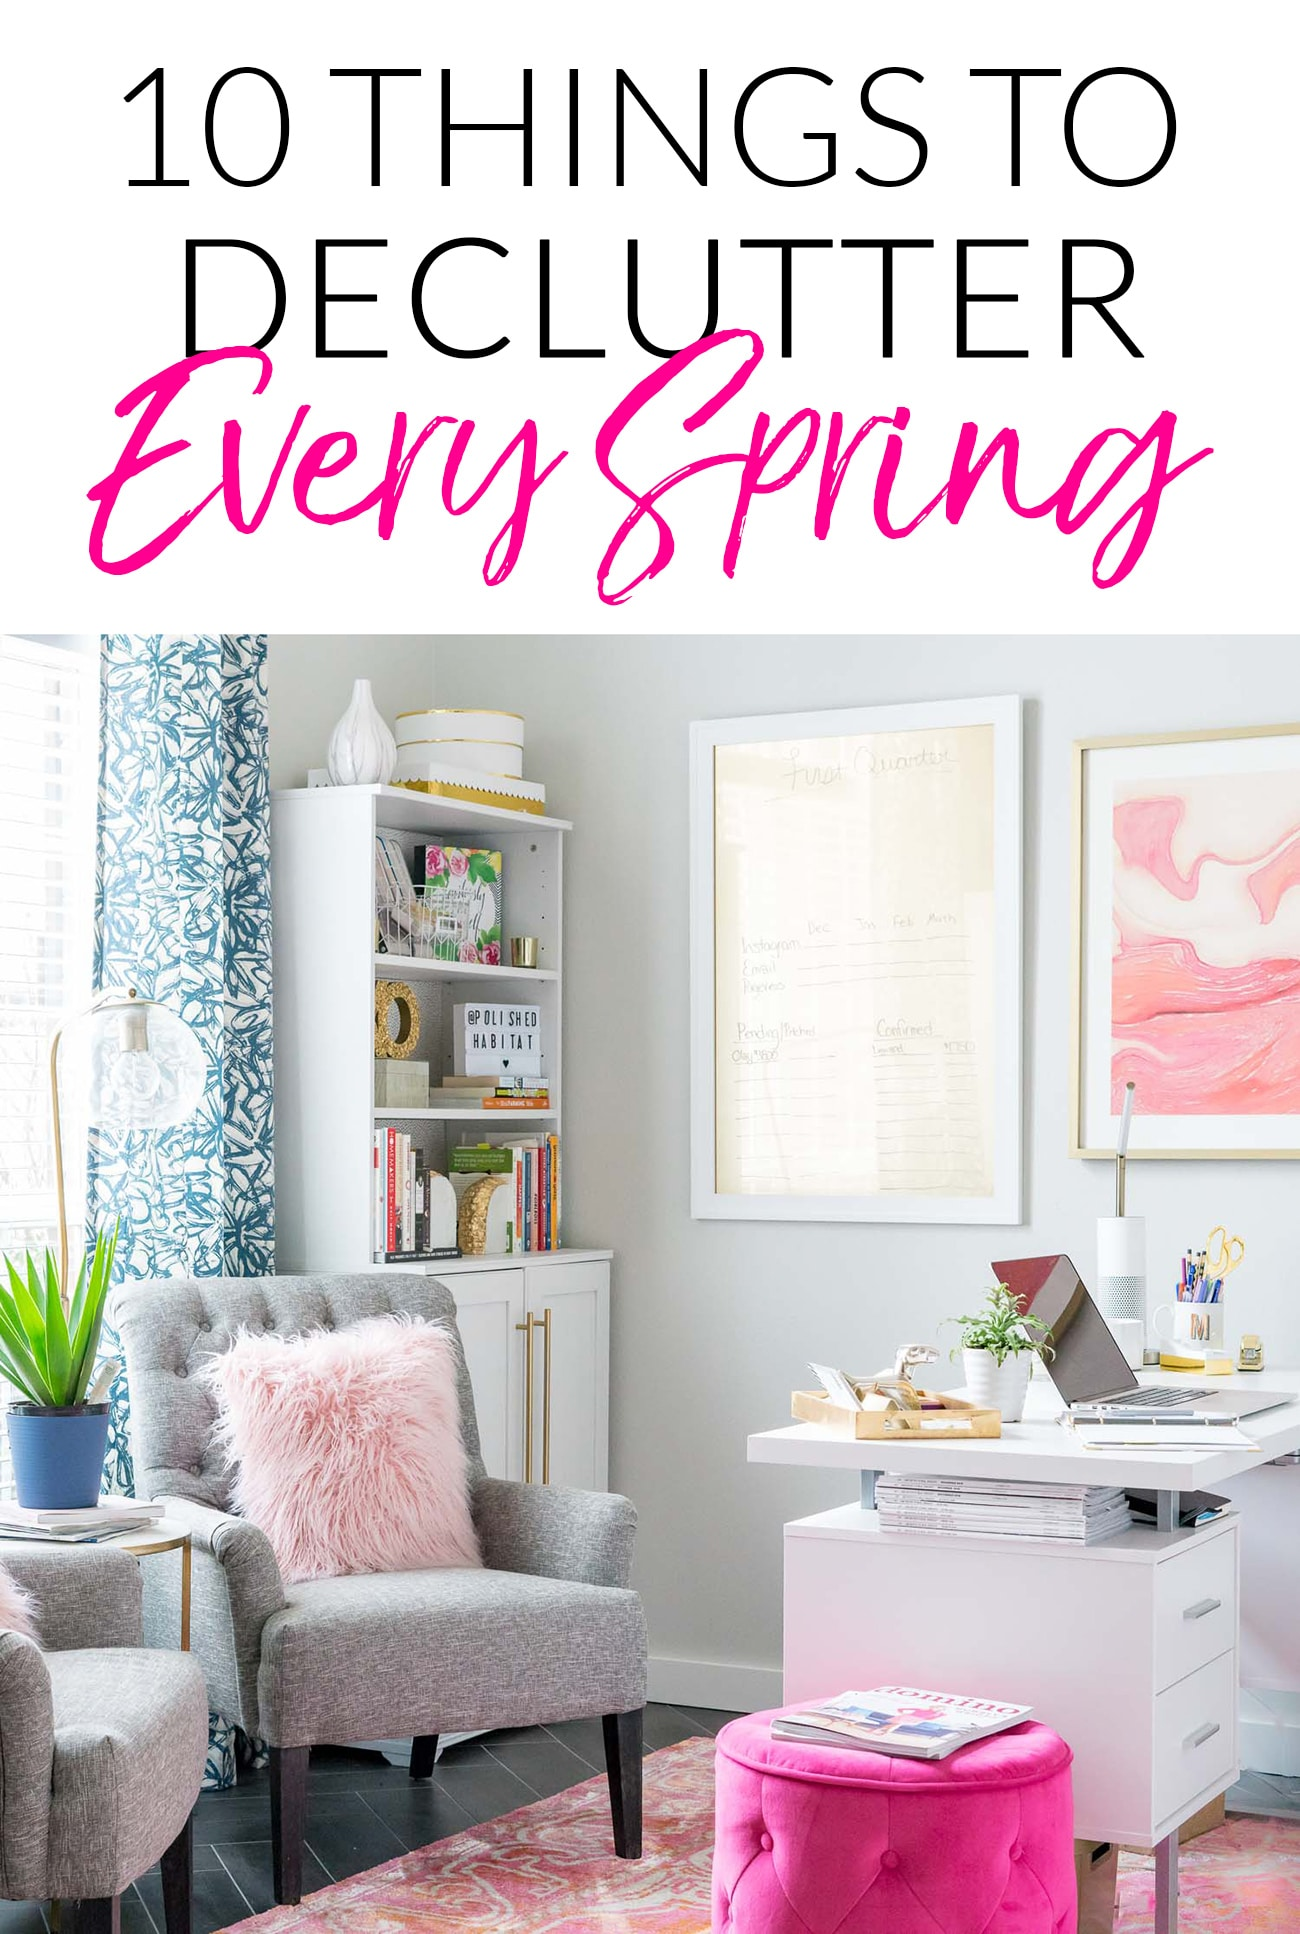 Pretty Office - Things to Purge Every Spring